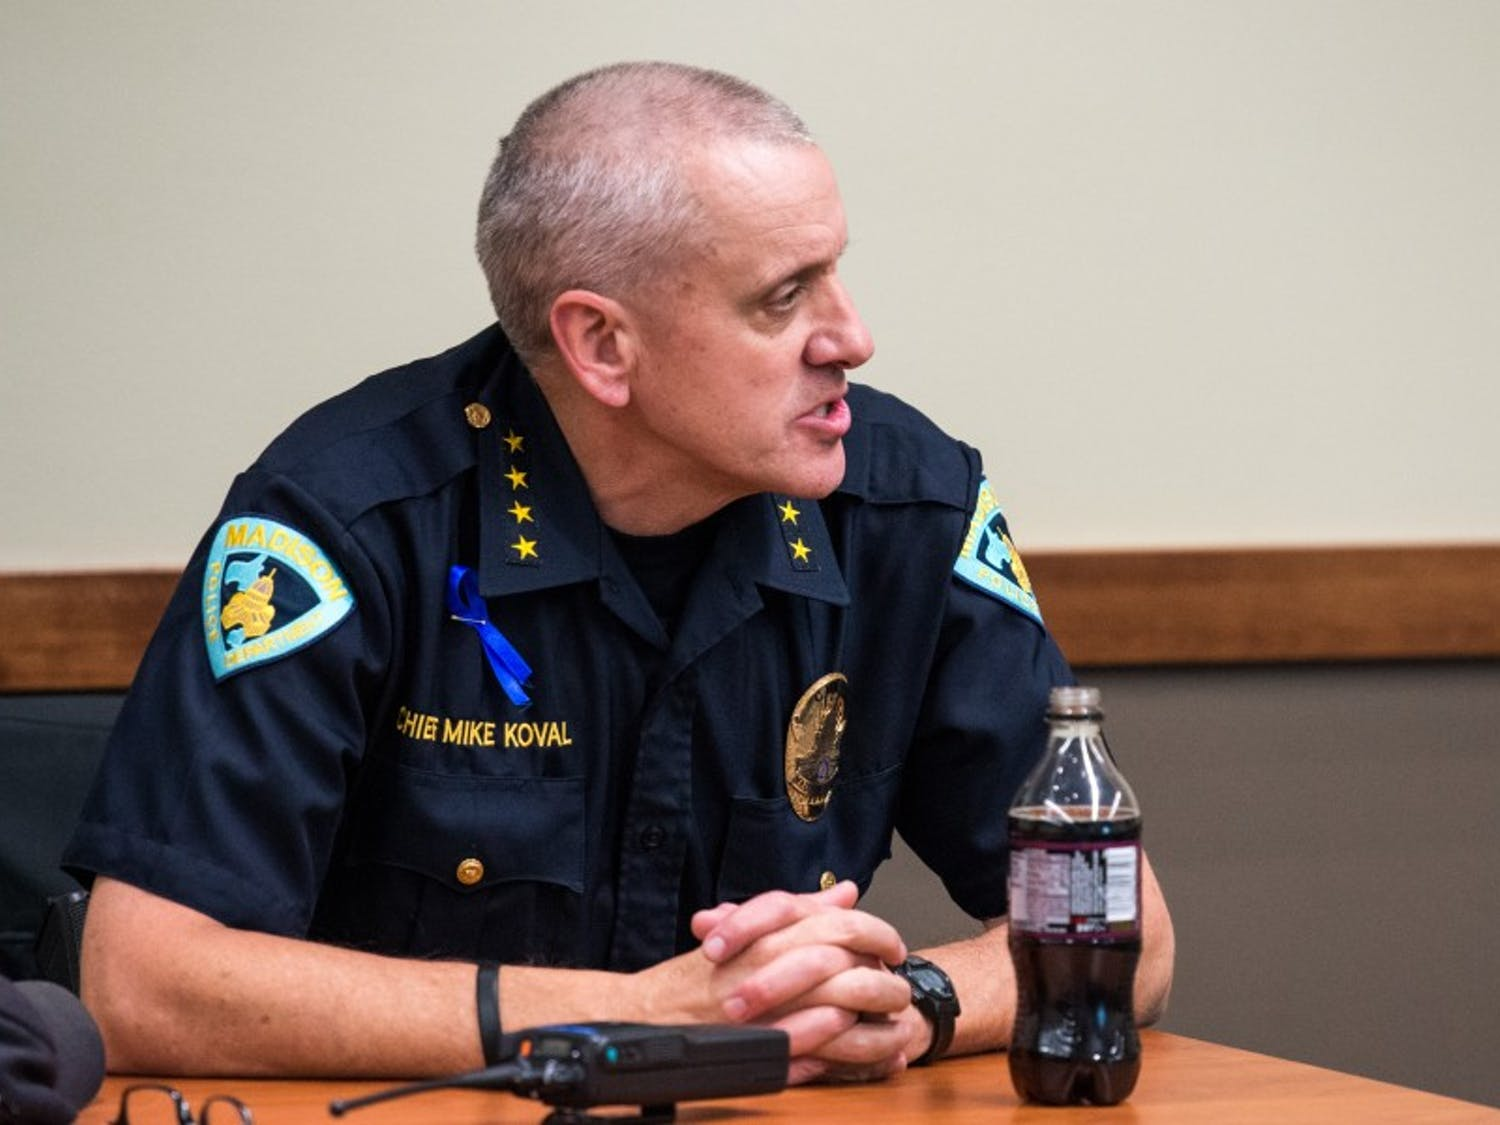 """Police Chief Mike Koval expressed Friday MPD's discontent with the historic settlement reached in the Tony Robinson case last week, highlighting that it should not be seen as an """"admission of guilt."""""""